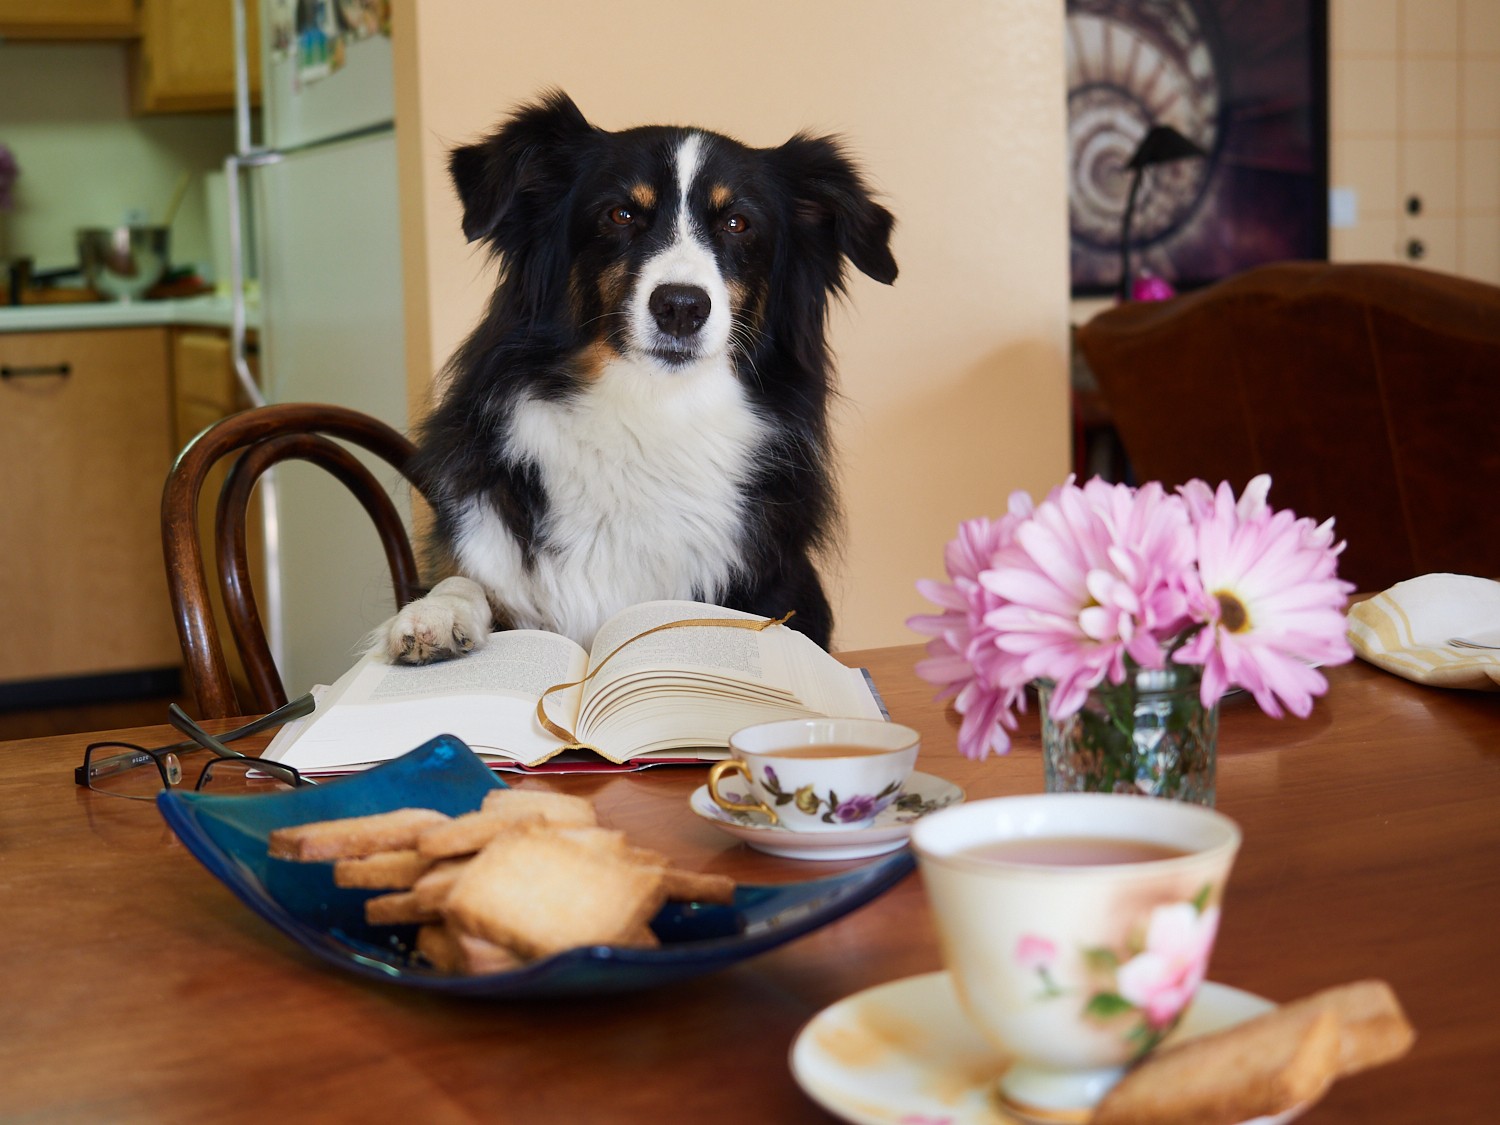 Riley loves his Sunday mornings with a good book, a cup of Earl Grey, and shortbread cookies.